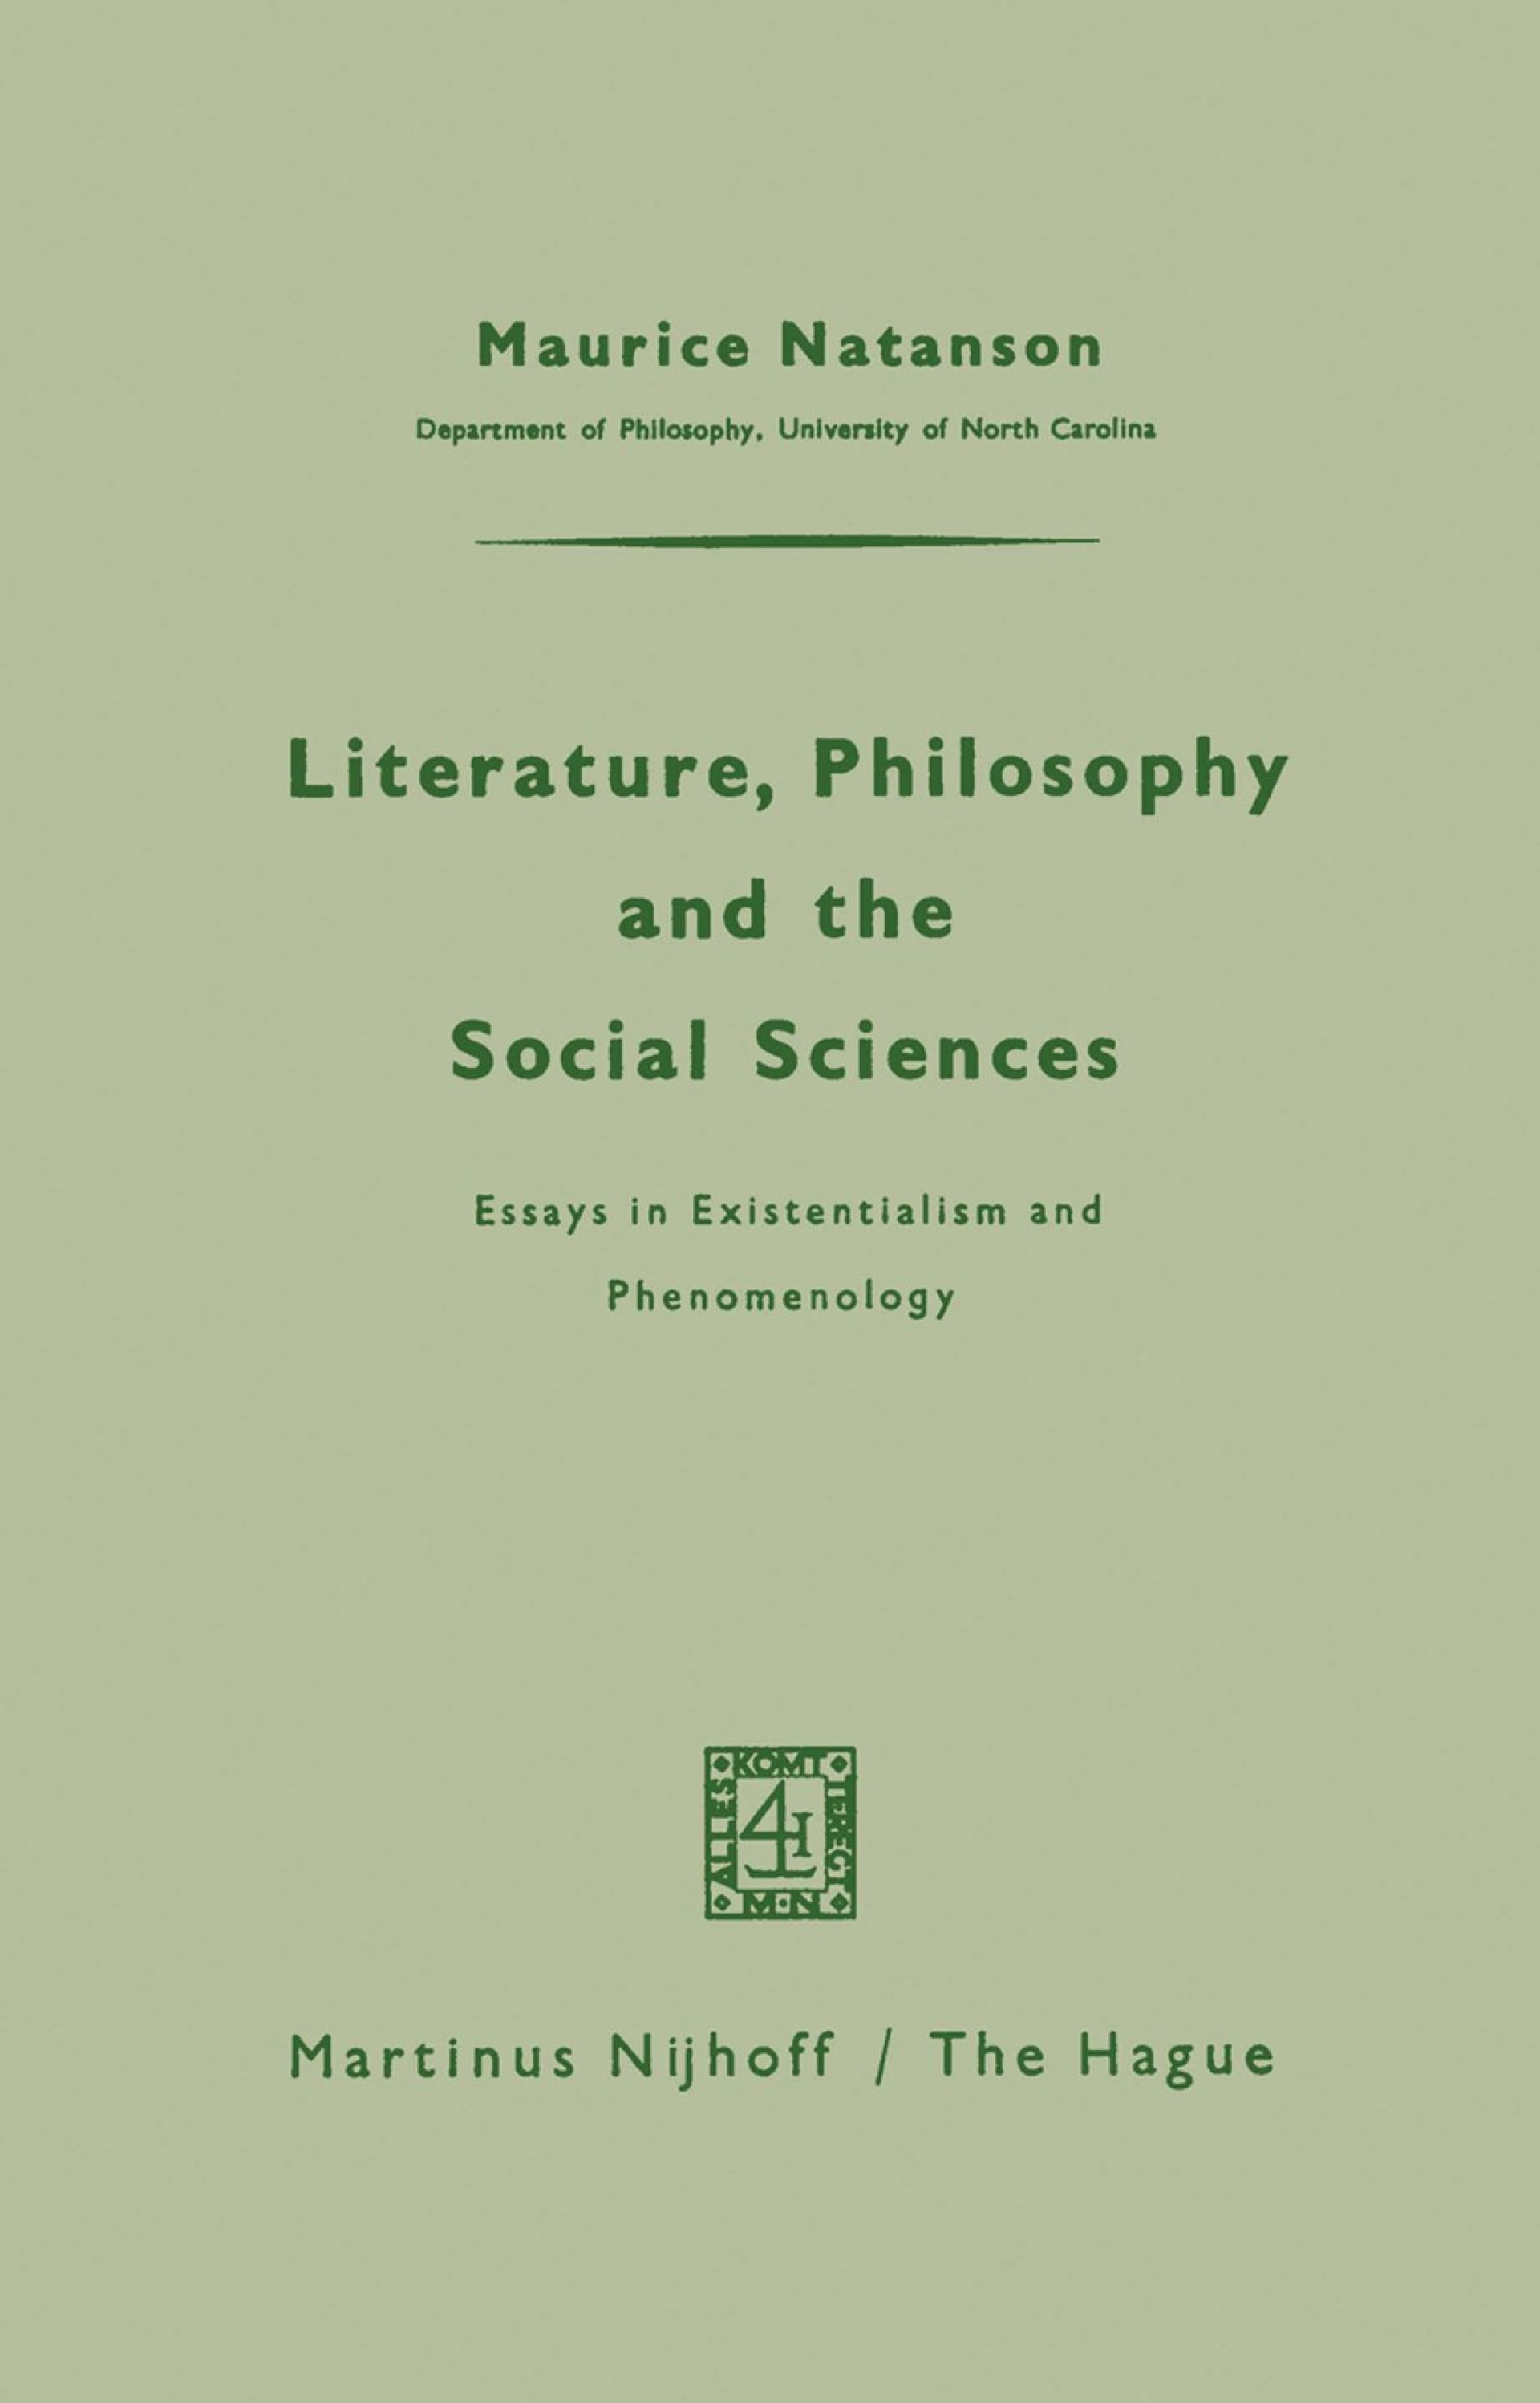 009 Literature Philosophy And The Social Sciences Essay Example Essays In Outstanding Existentialism Pdf Sartre 1920